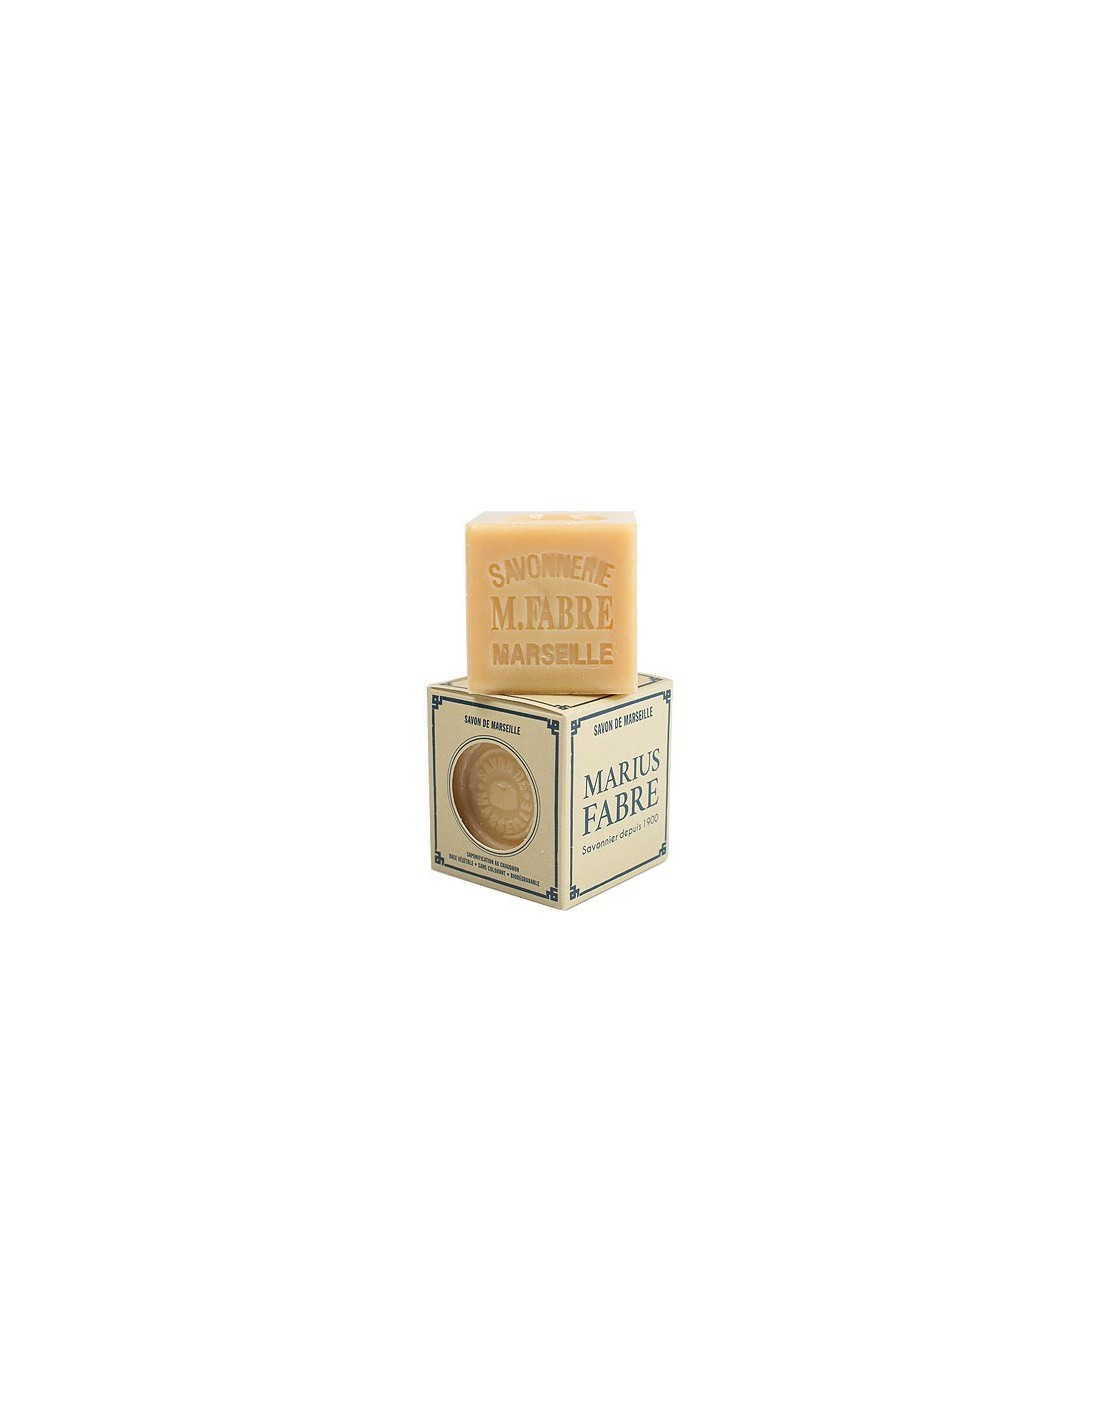 Salon De Massage Marseille Cube Of Savon De Marseille Nature Marius Fabre Palm Oil 200 G